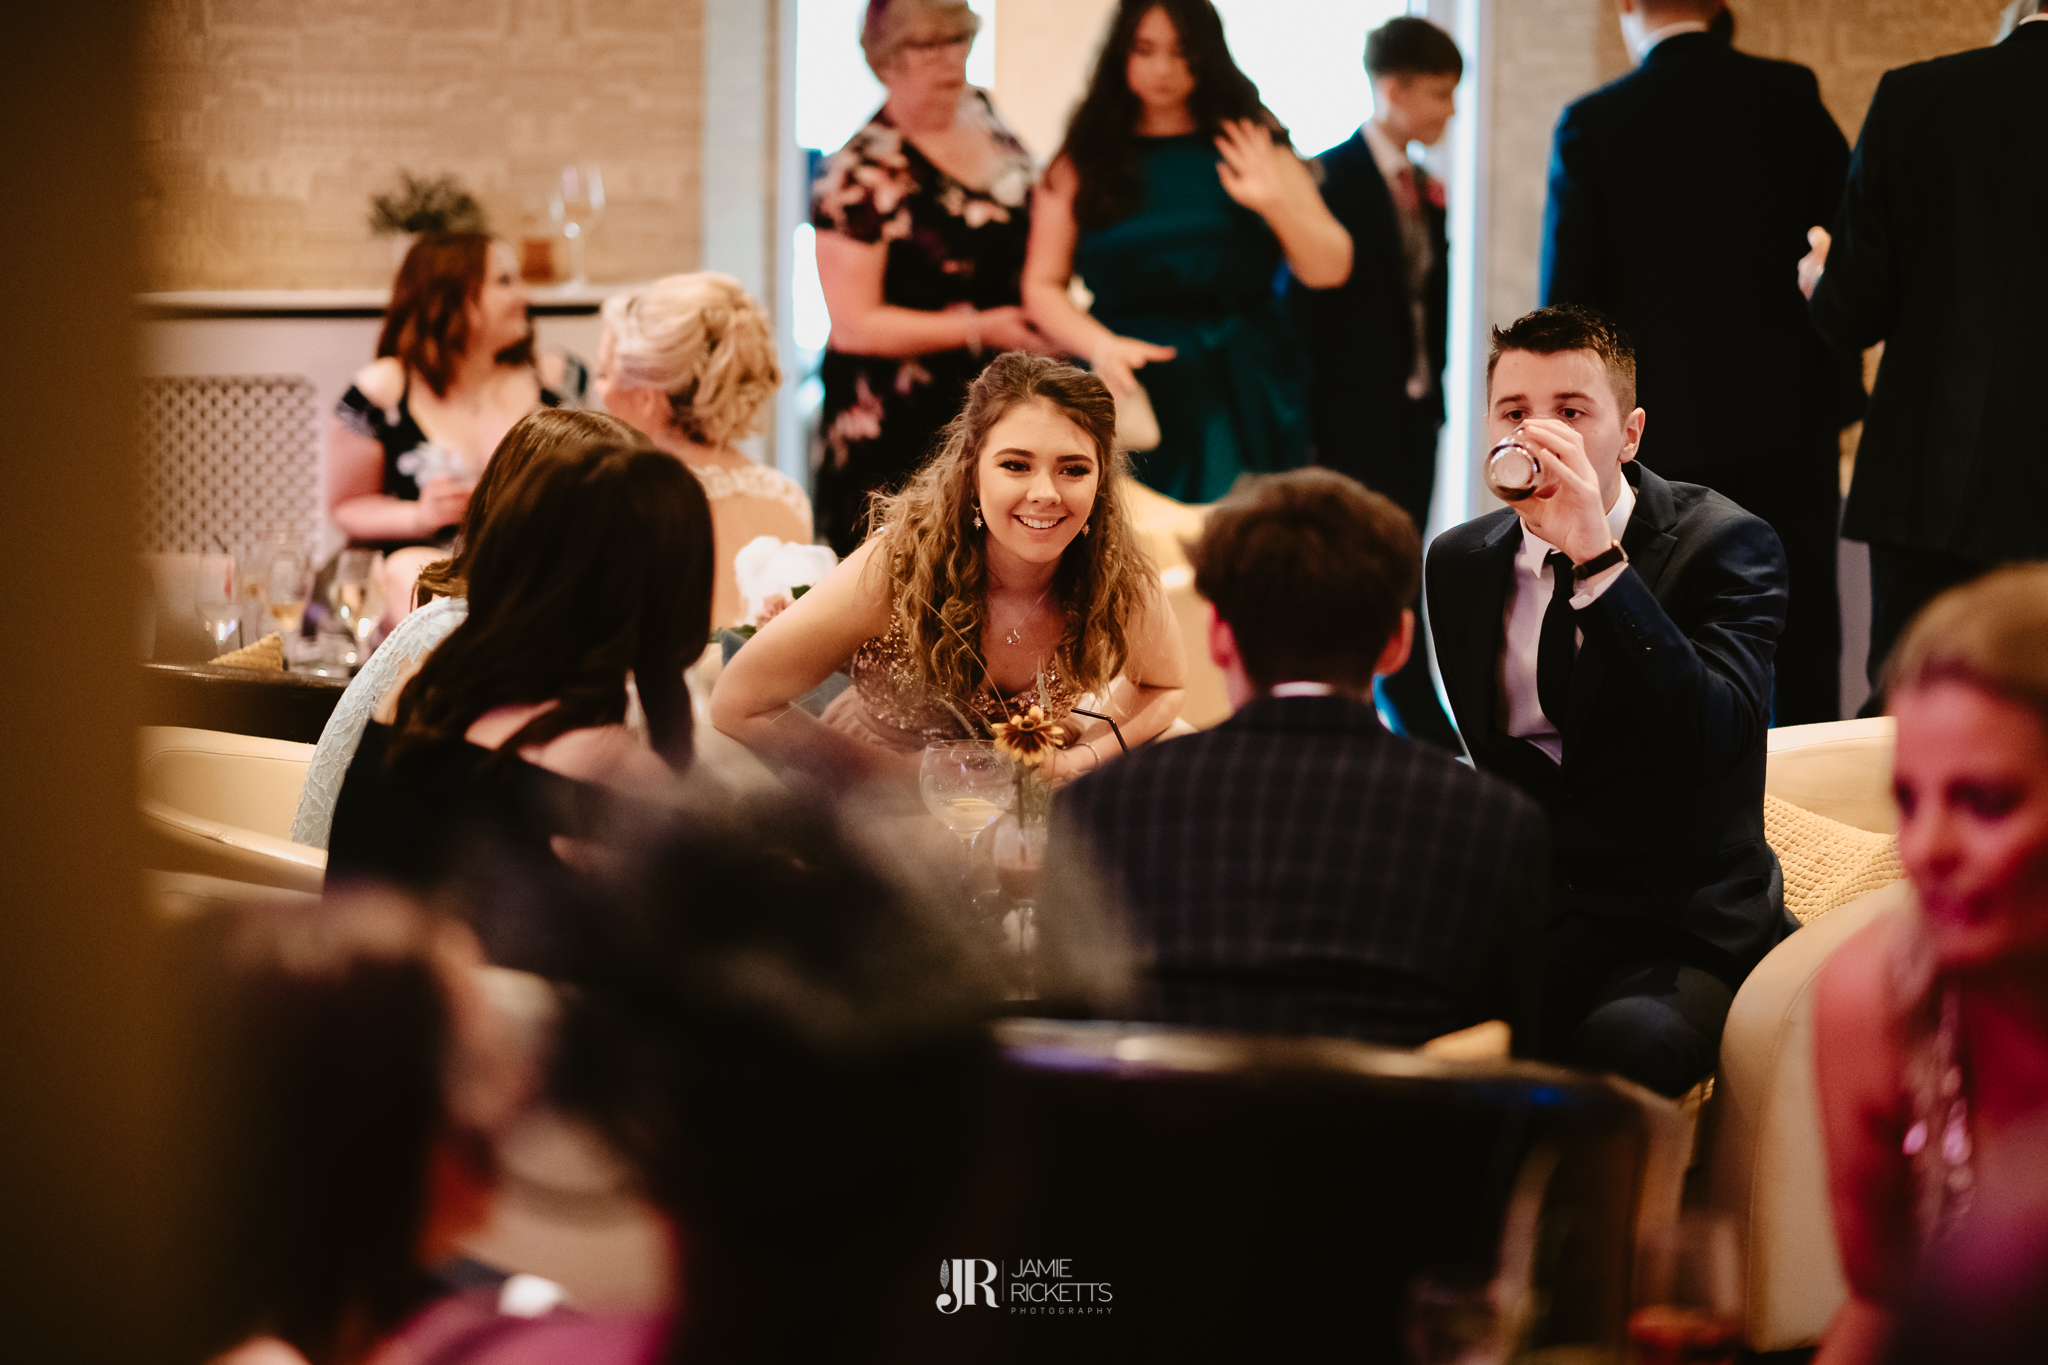 Wroxeter-Hotel-Wedding-Photography-In-Shropshire-By-Shropshire-Wedding-Photographer-Jamie-Ricketts-129.JPG